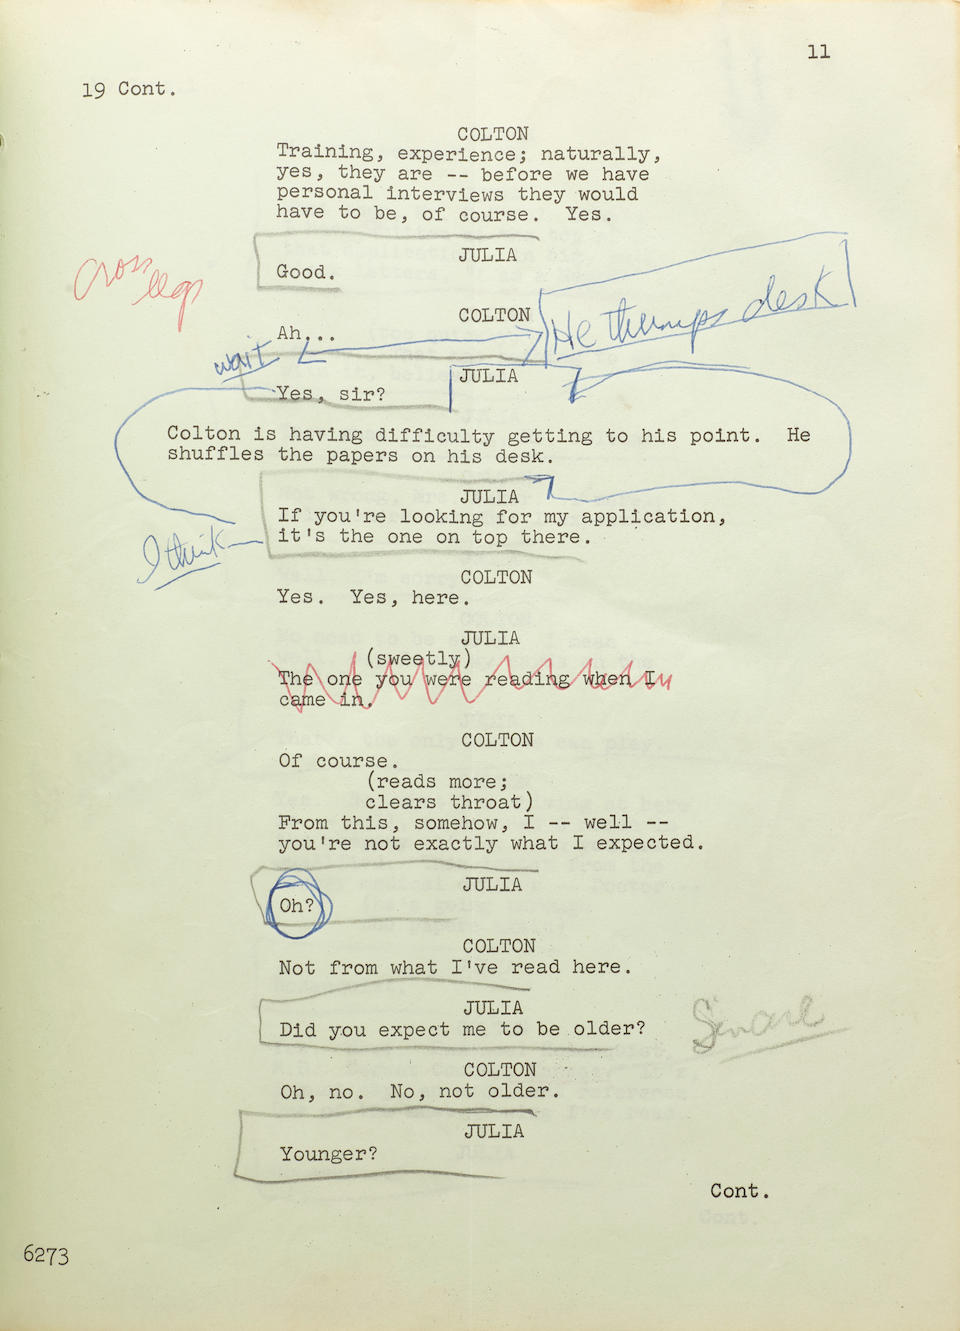 A working script for the pilot episode of Julia